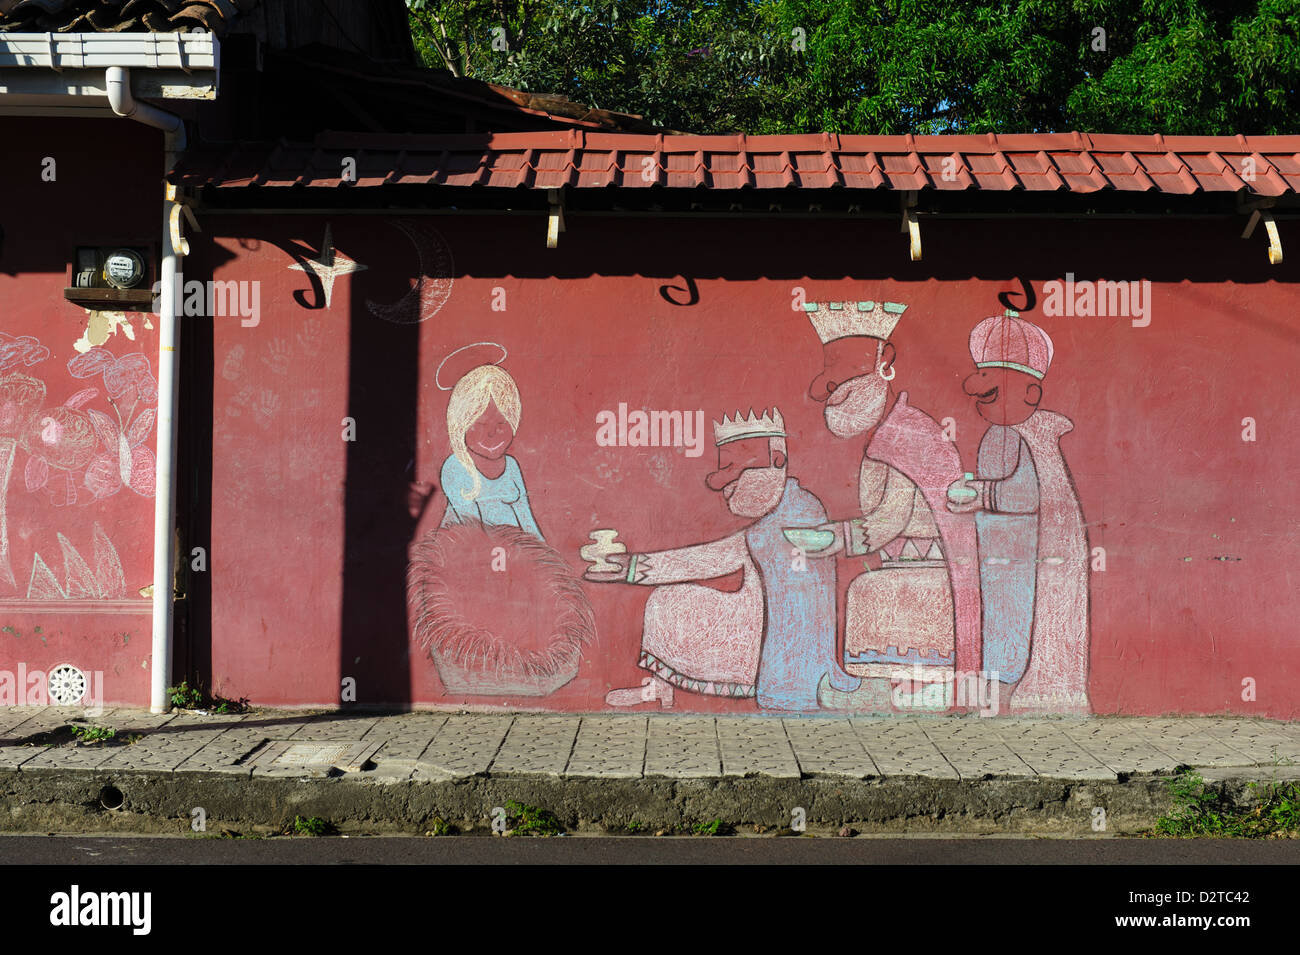 Christmas: Chalk drawing on a red wall in Liberia. Costa Rica Stock Photo